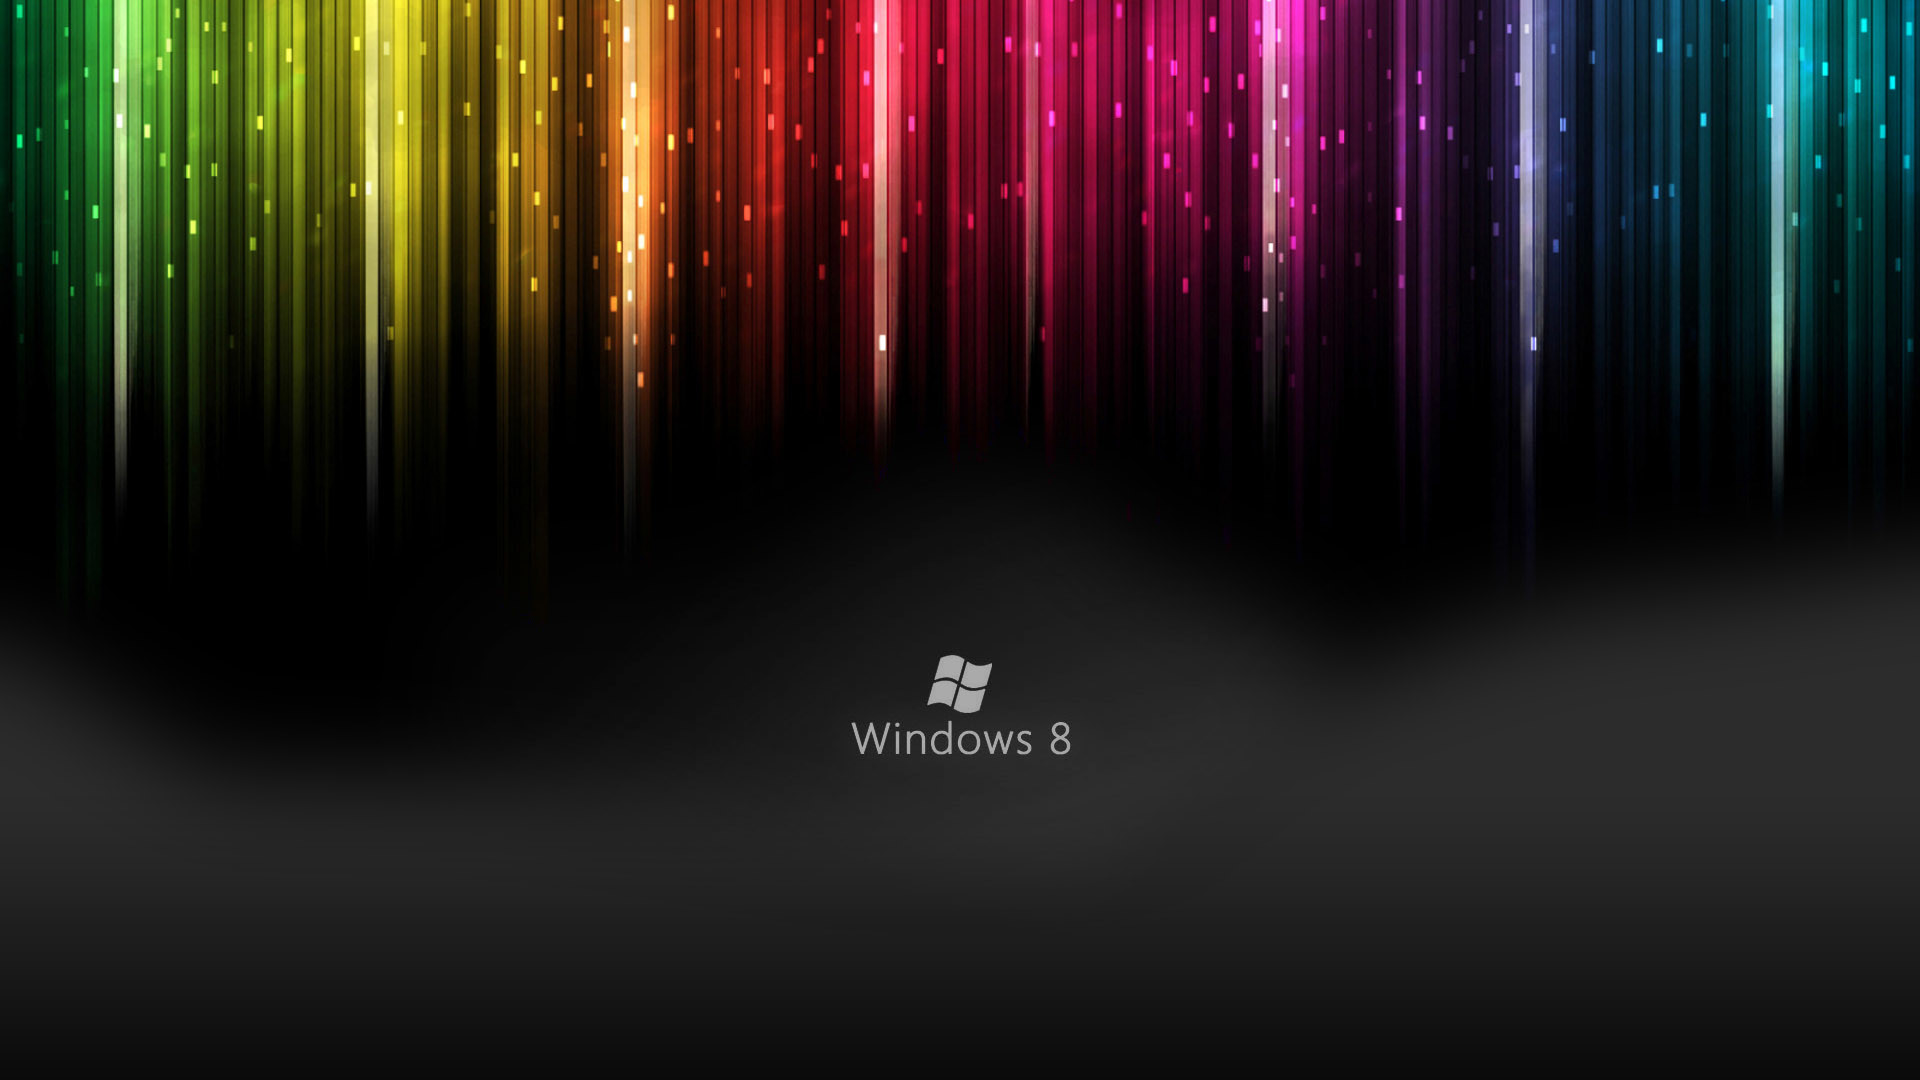 hd wallpapers for windows phone 8